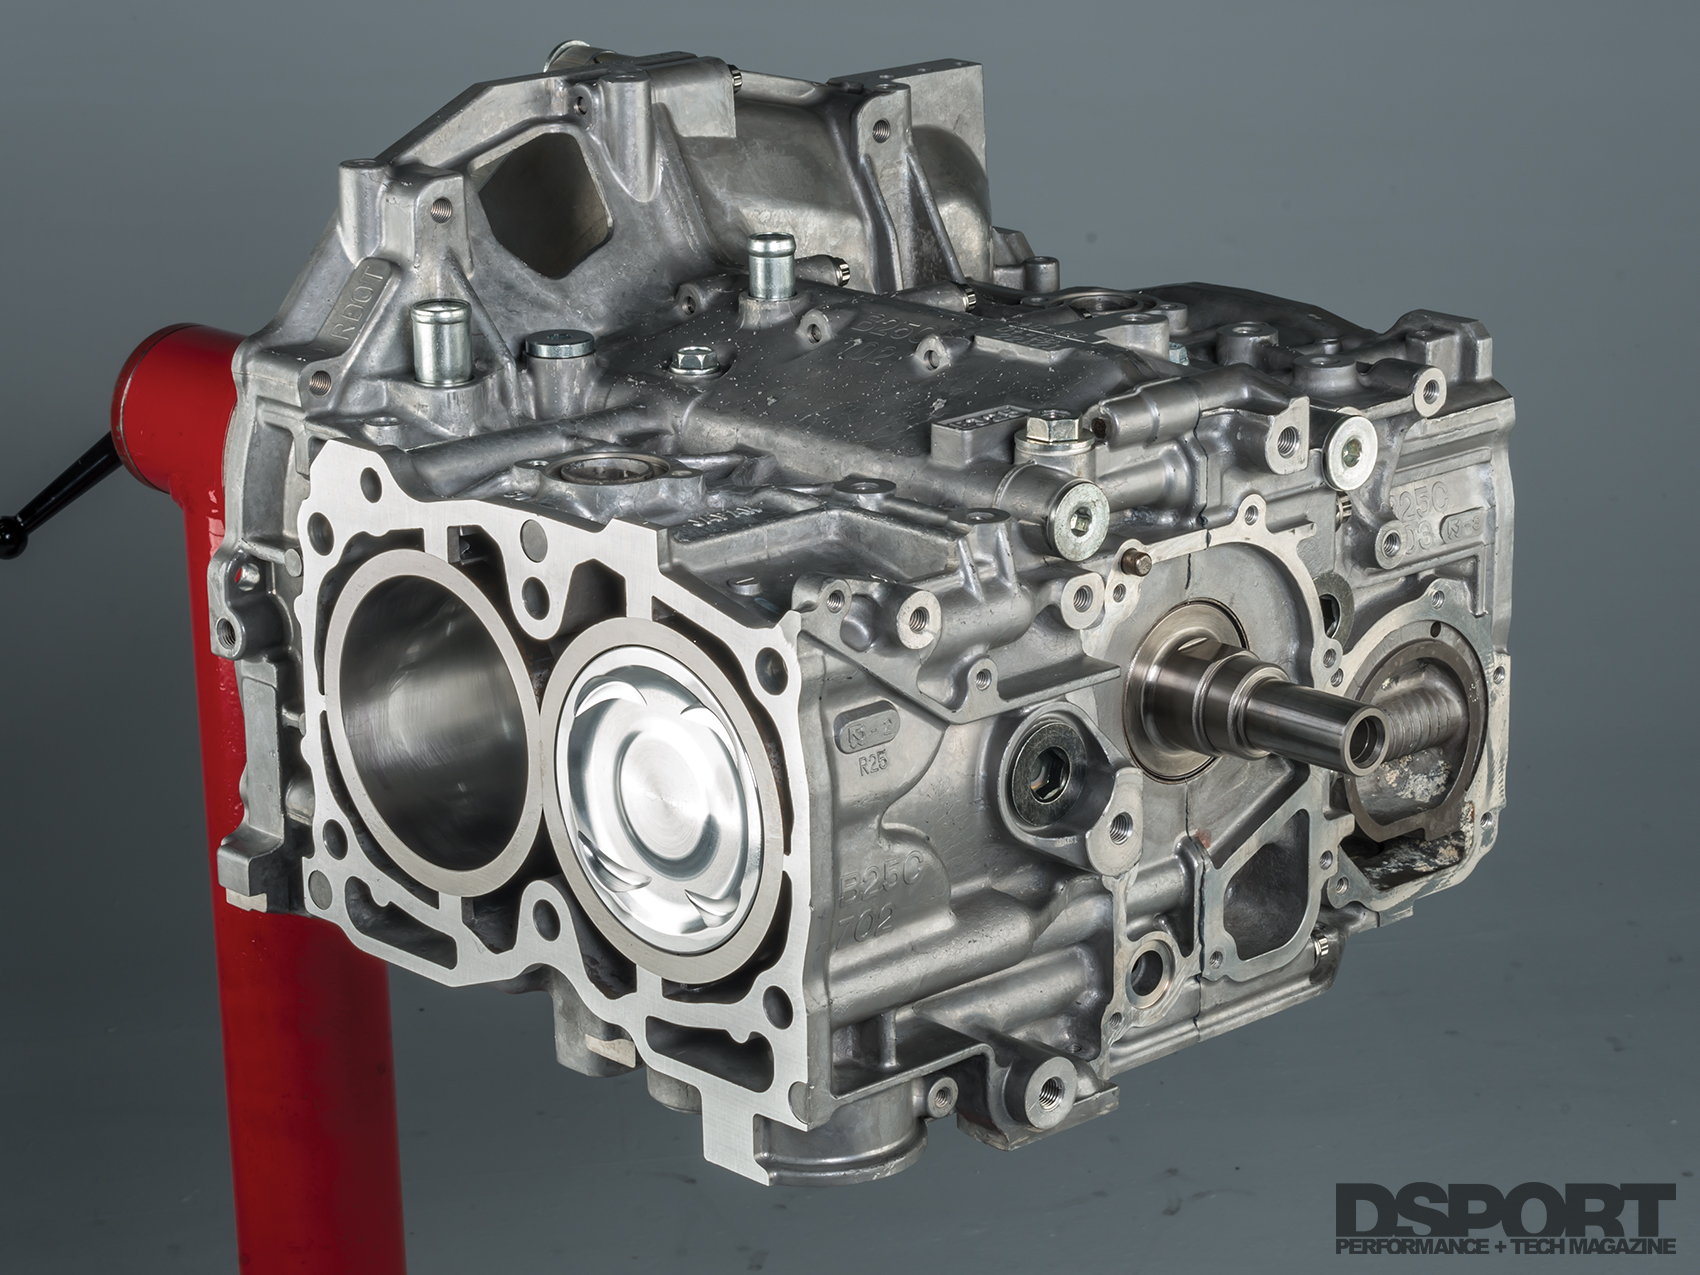 Subaru Ej257 Bottom End Breakdown Dsport Engine Diagram